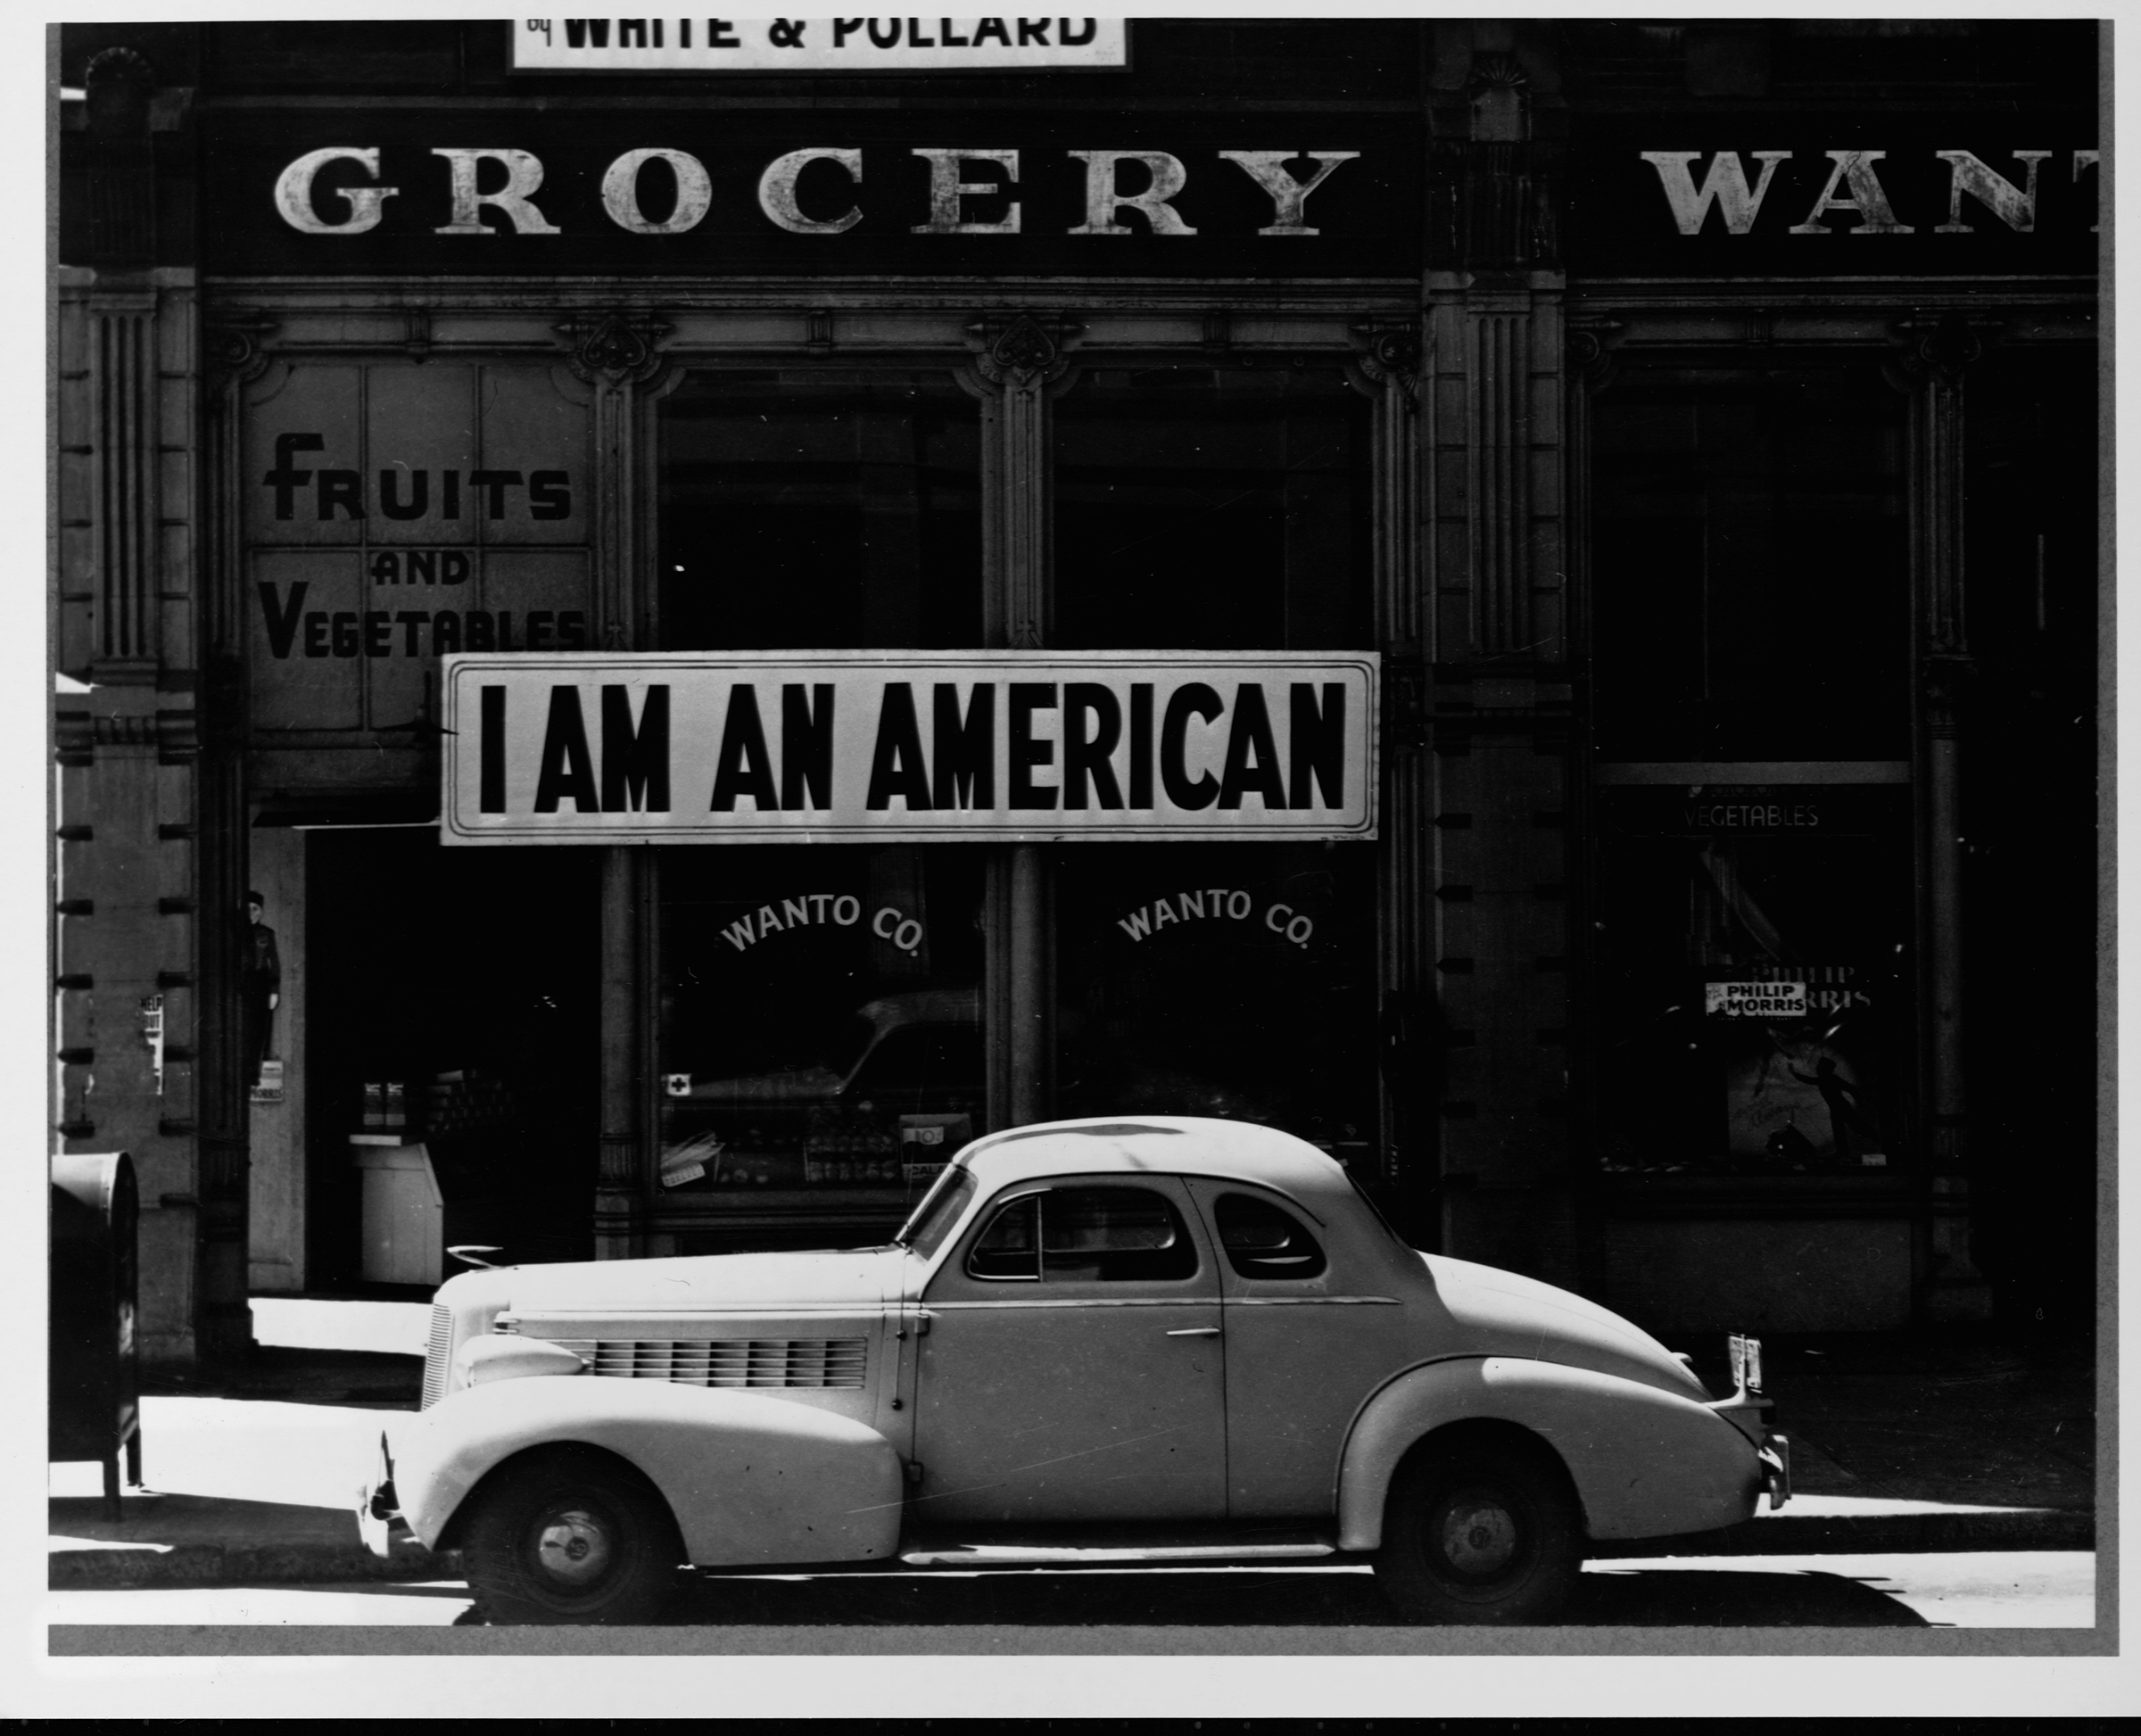 The Japanese owner of this grocery store in Oakland, California displays a sign reminding pedestrians of his loyalties to America, and not Japan, in 1944.